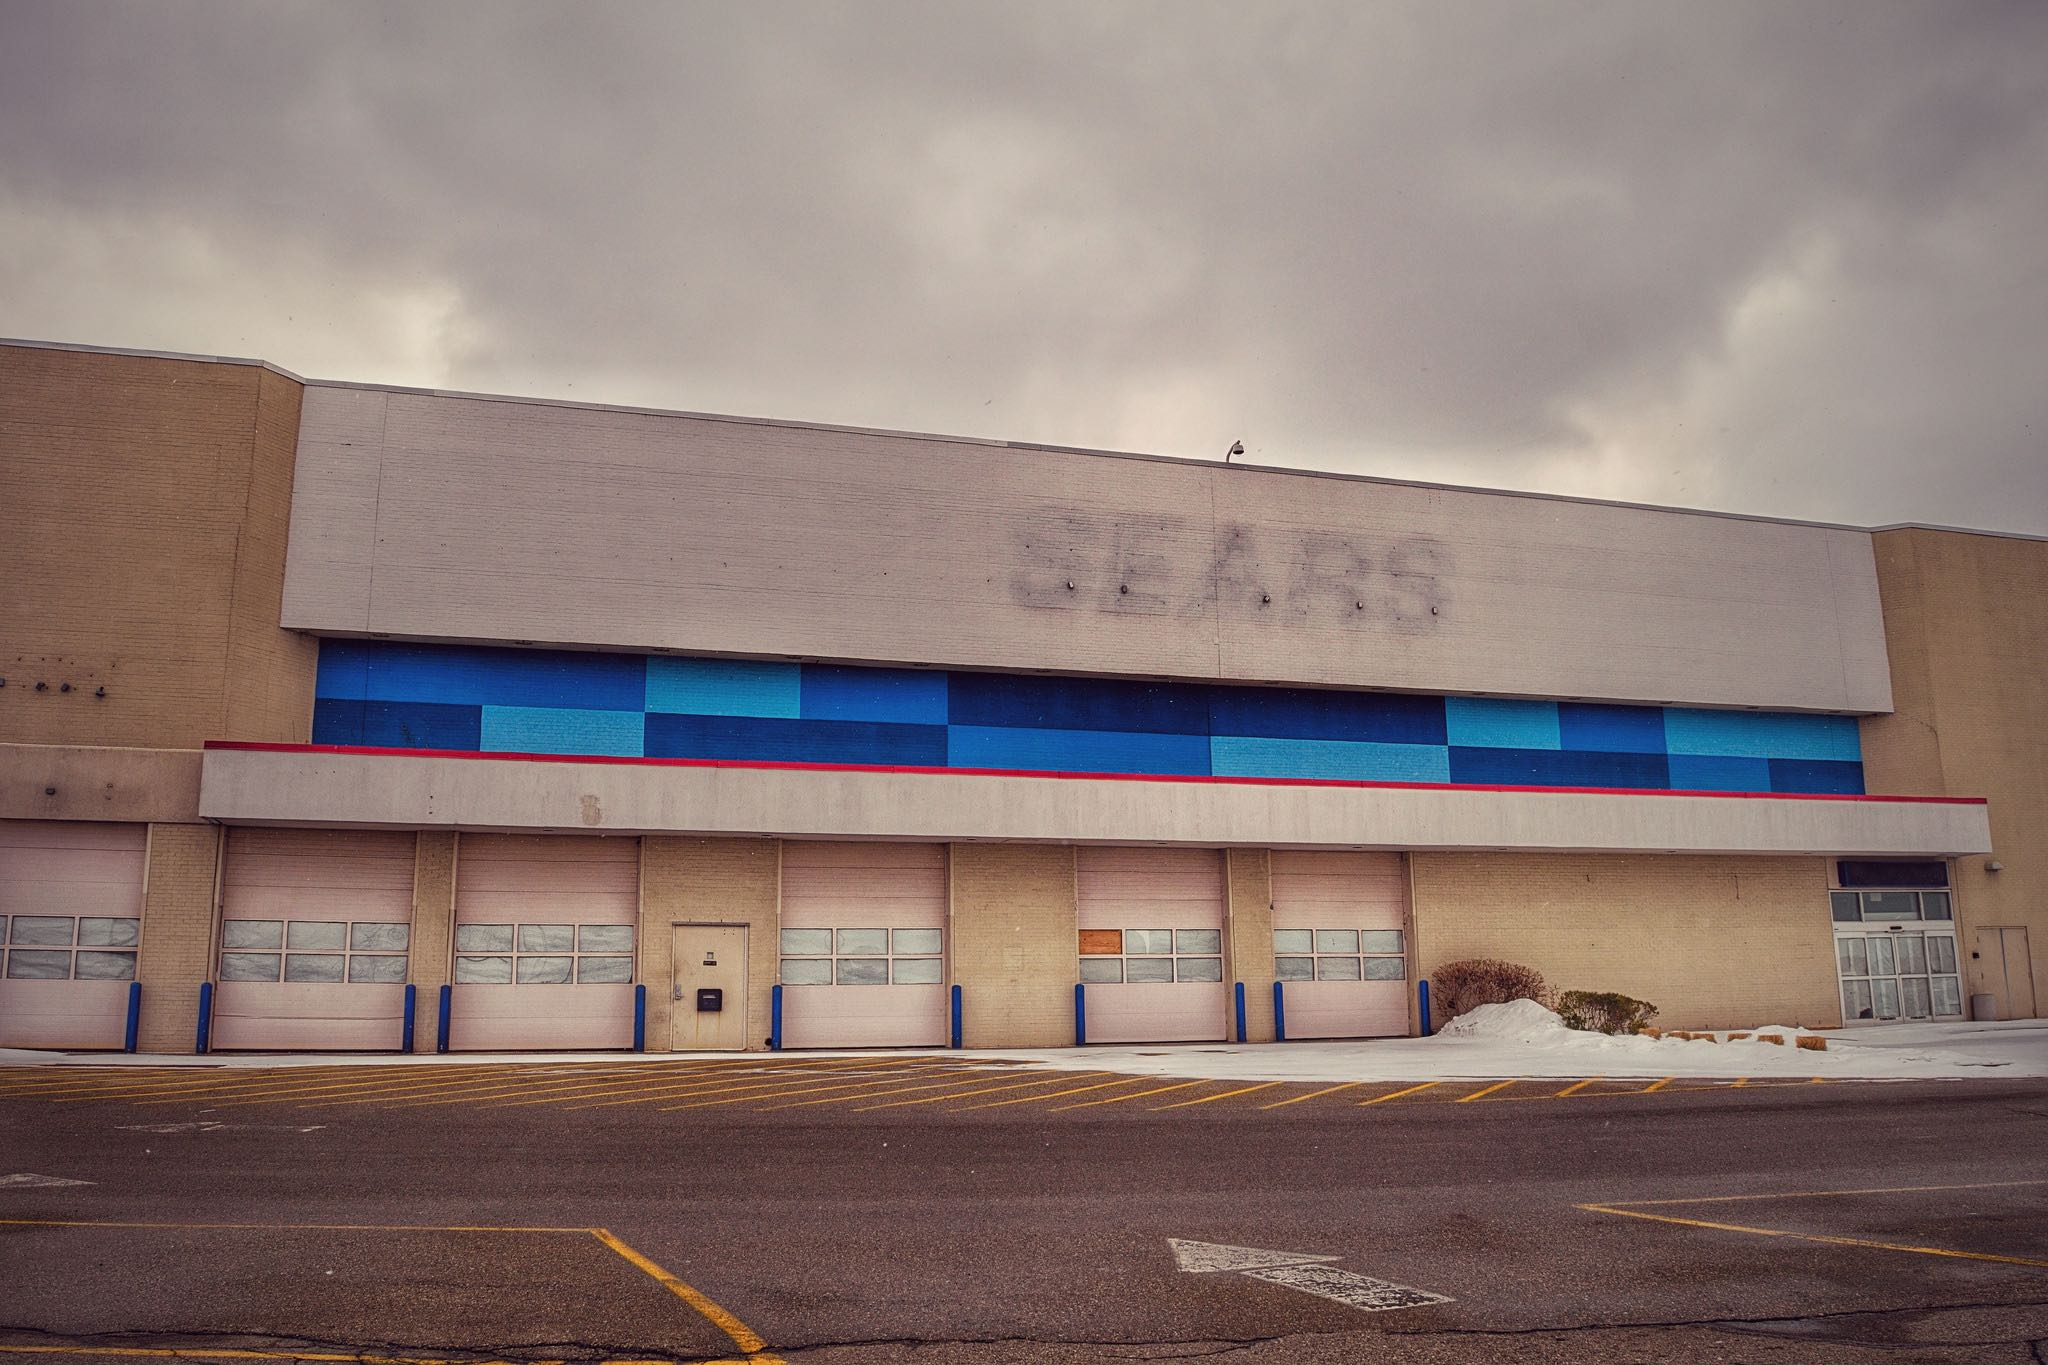 Sears is one major U.S. retailer that has shuttered many stores. (Source: Nicholas Eckhart via  Flickr )